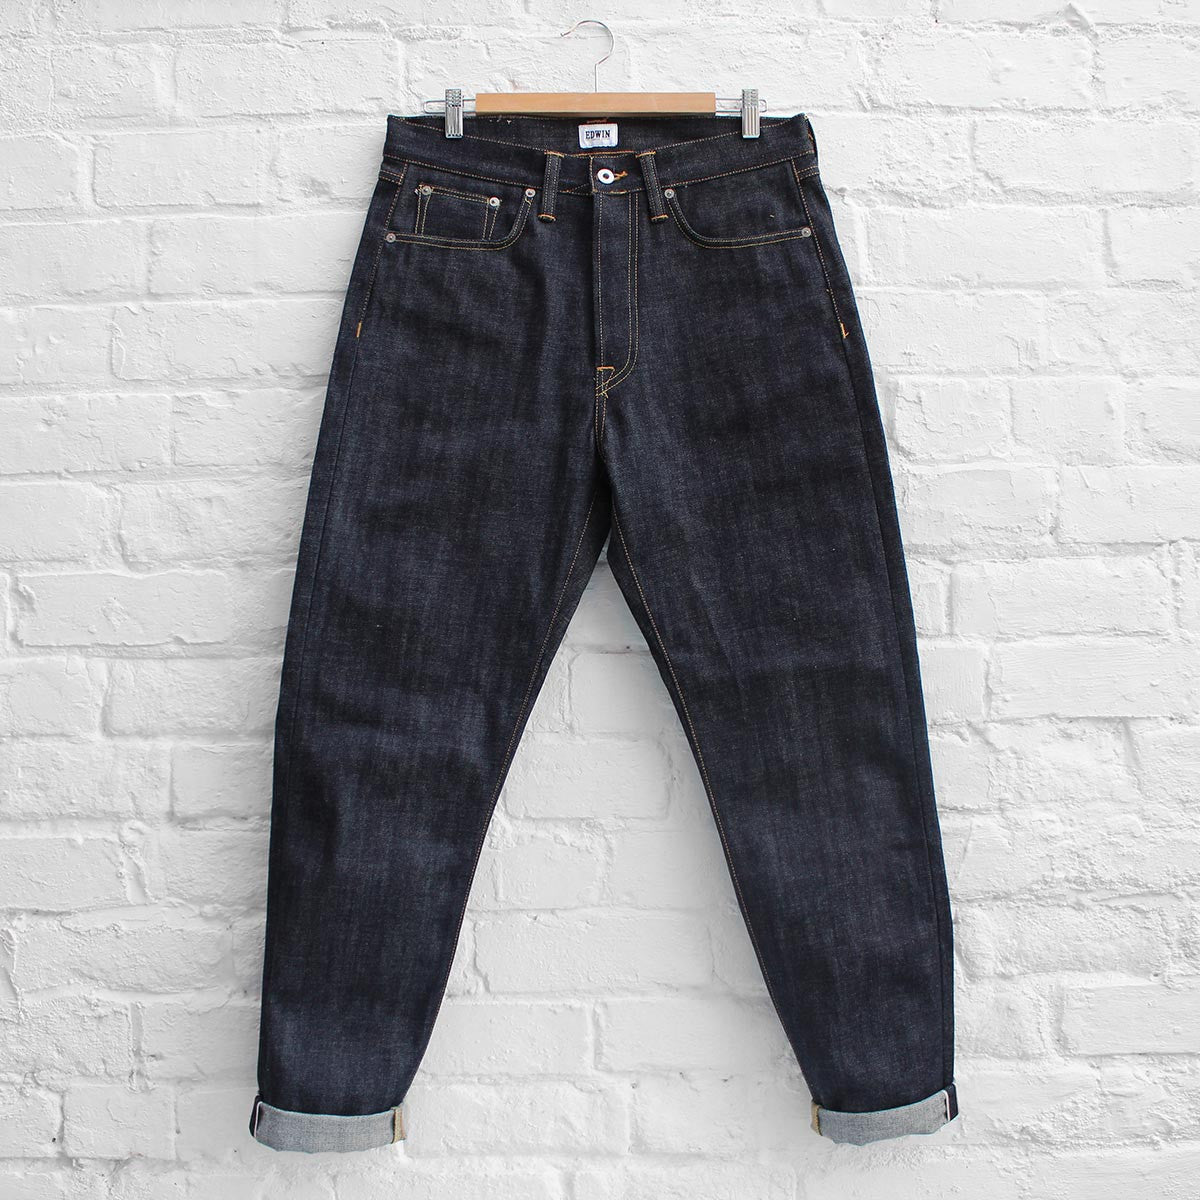 Edwin ED-45 Jeans Red Listed Selvage Unwashed